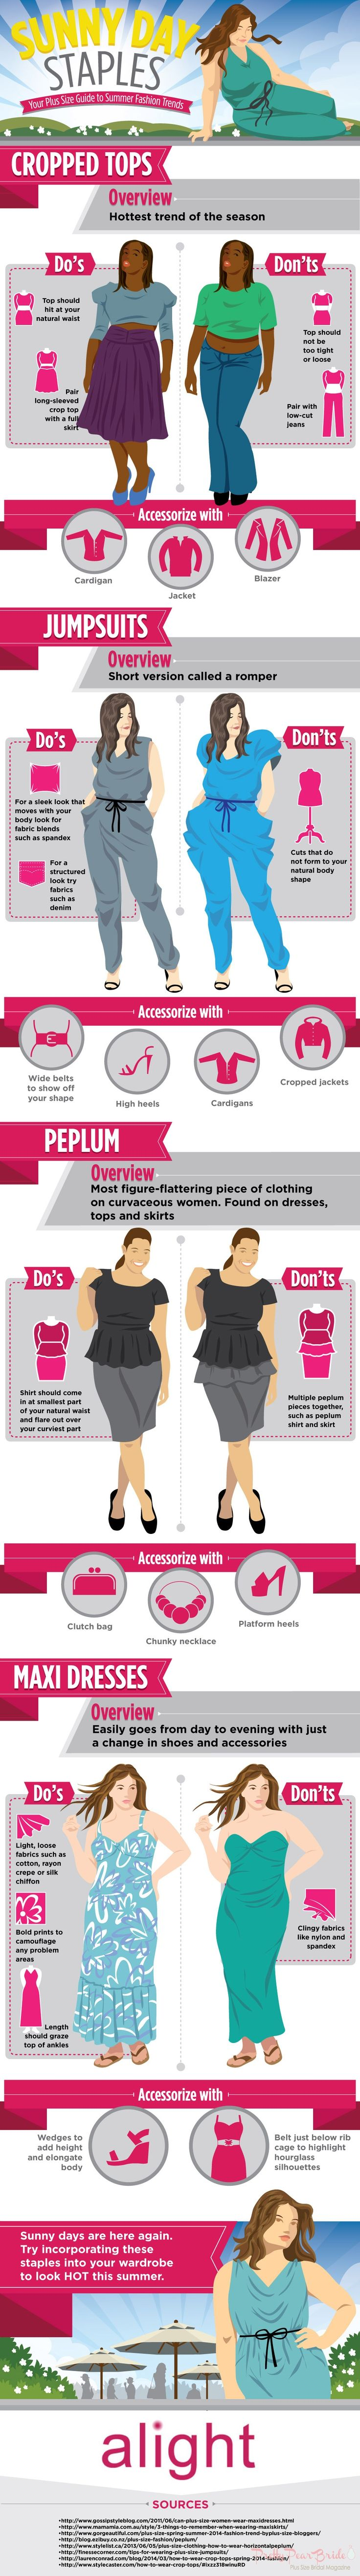 #plussize #fashions {Fashion Friday} Do's and Don'ts of Plus Size Summer Trends   Pretty Pear Bride   http://prettypearbride.com/fashion-friday-dos-and-donts-of-plus-size-summer-trends/